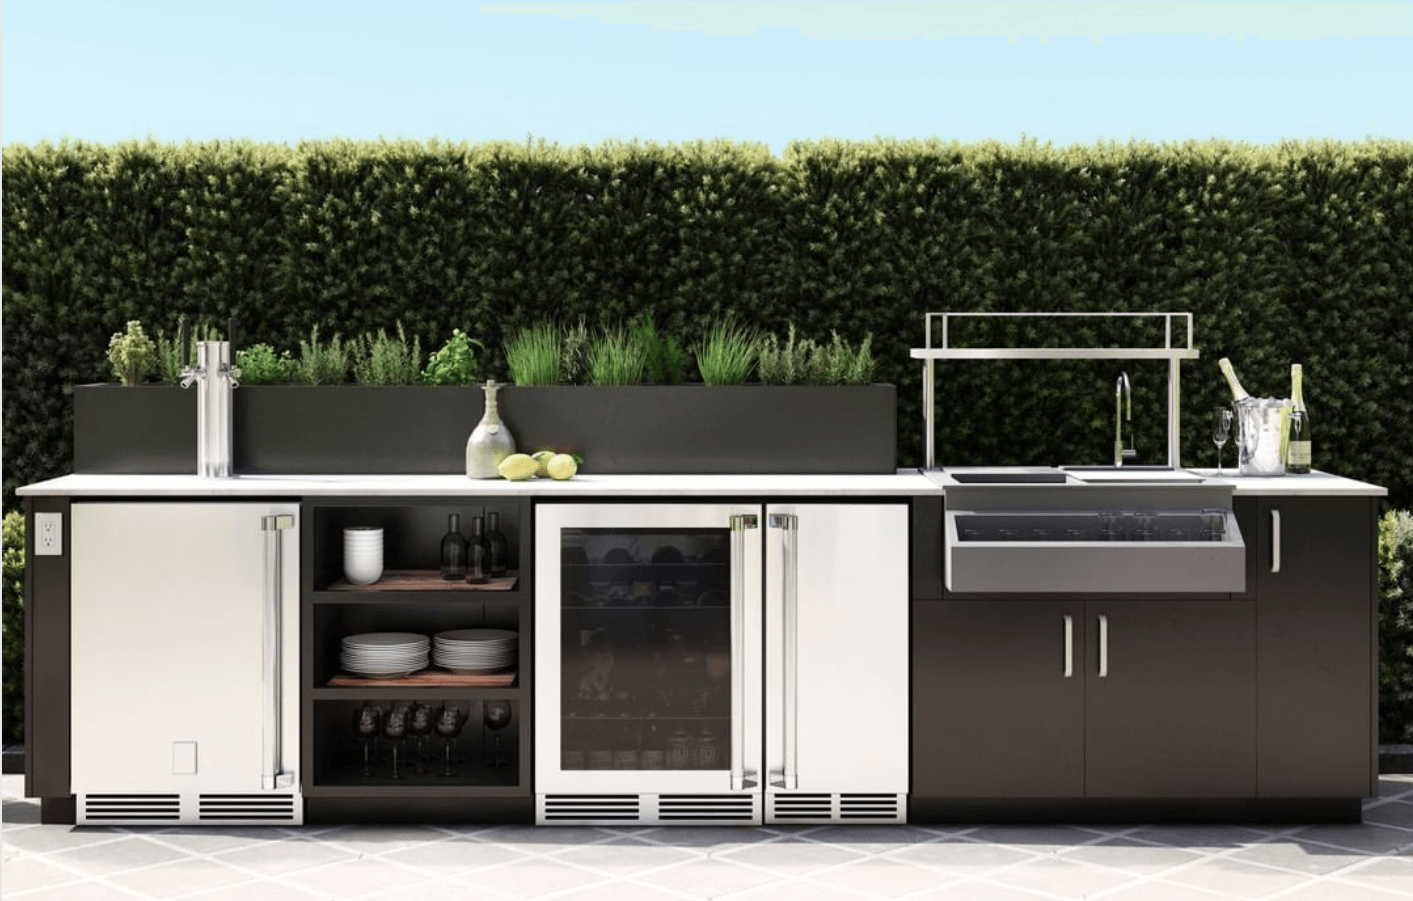 Luxury Outdoor Kitchen Contractor - Rise Outdoor